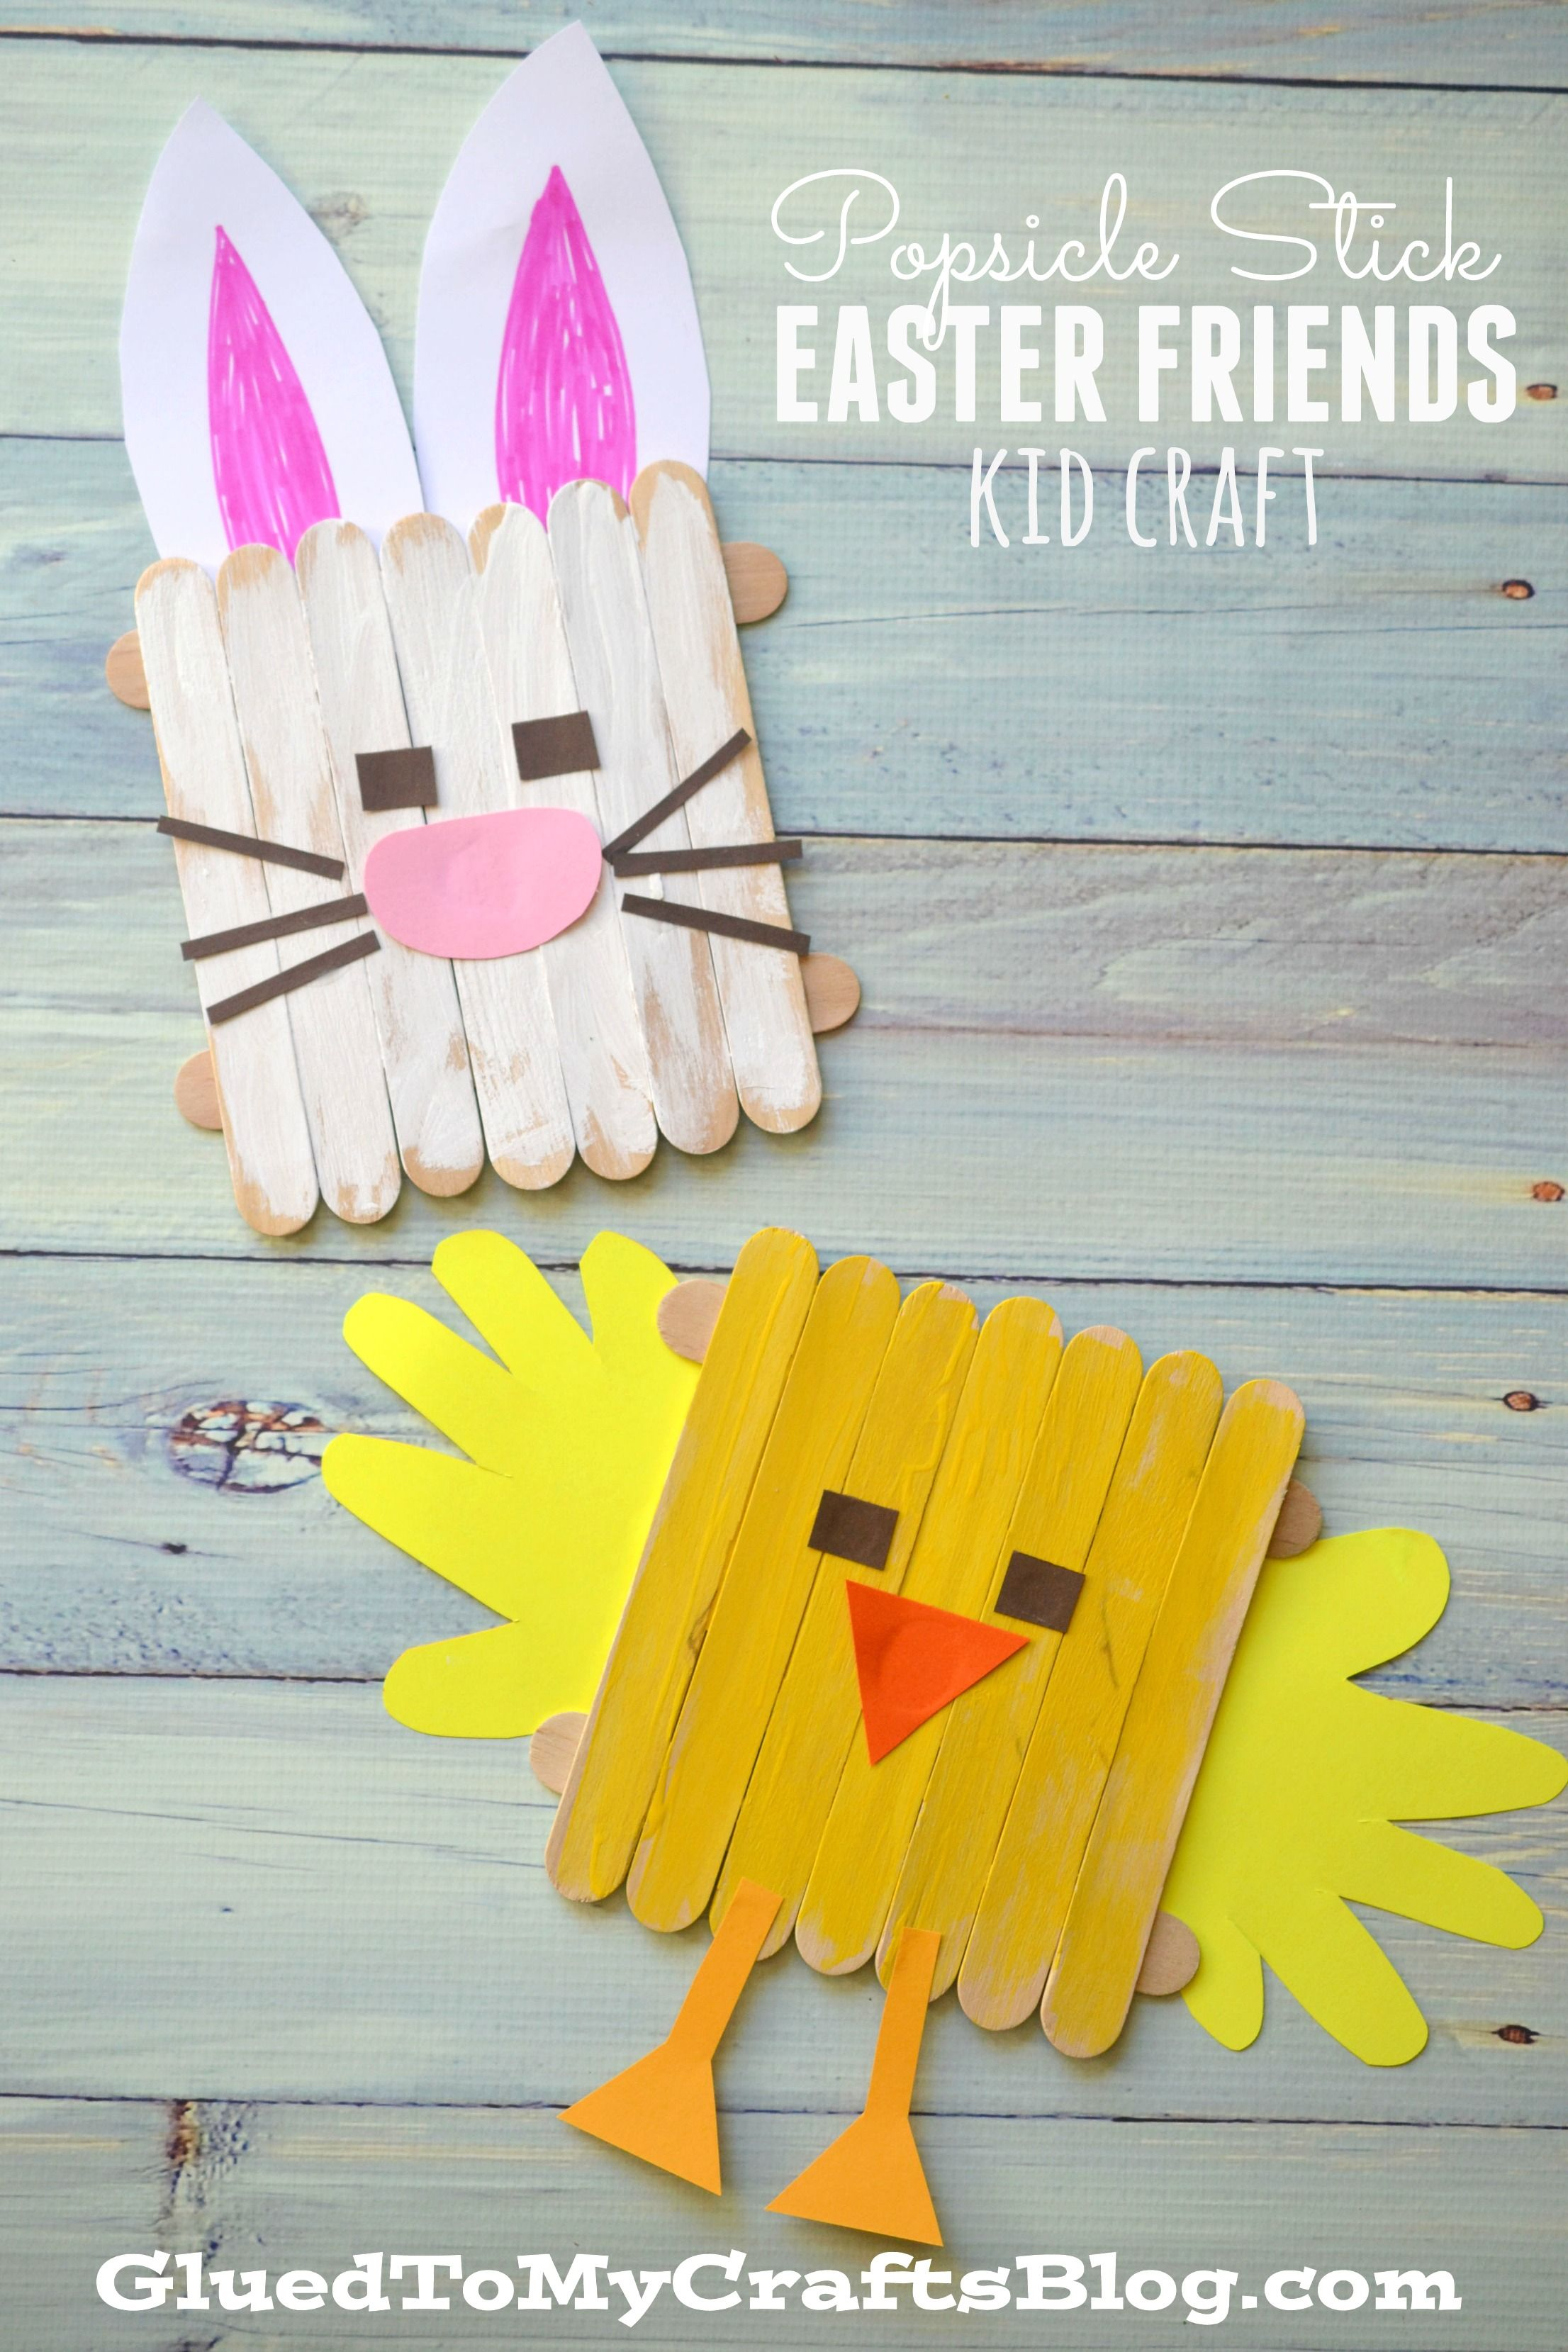 Arts and crafts sticks - Popsicle Stick Easter Friends Kid Craft